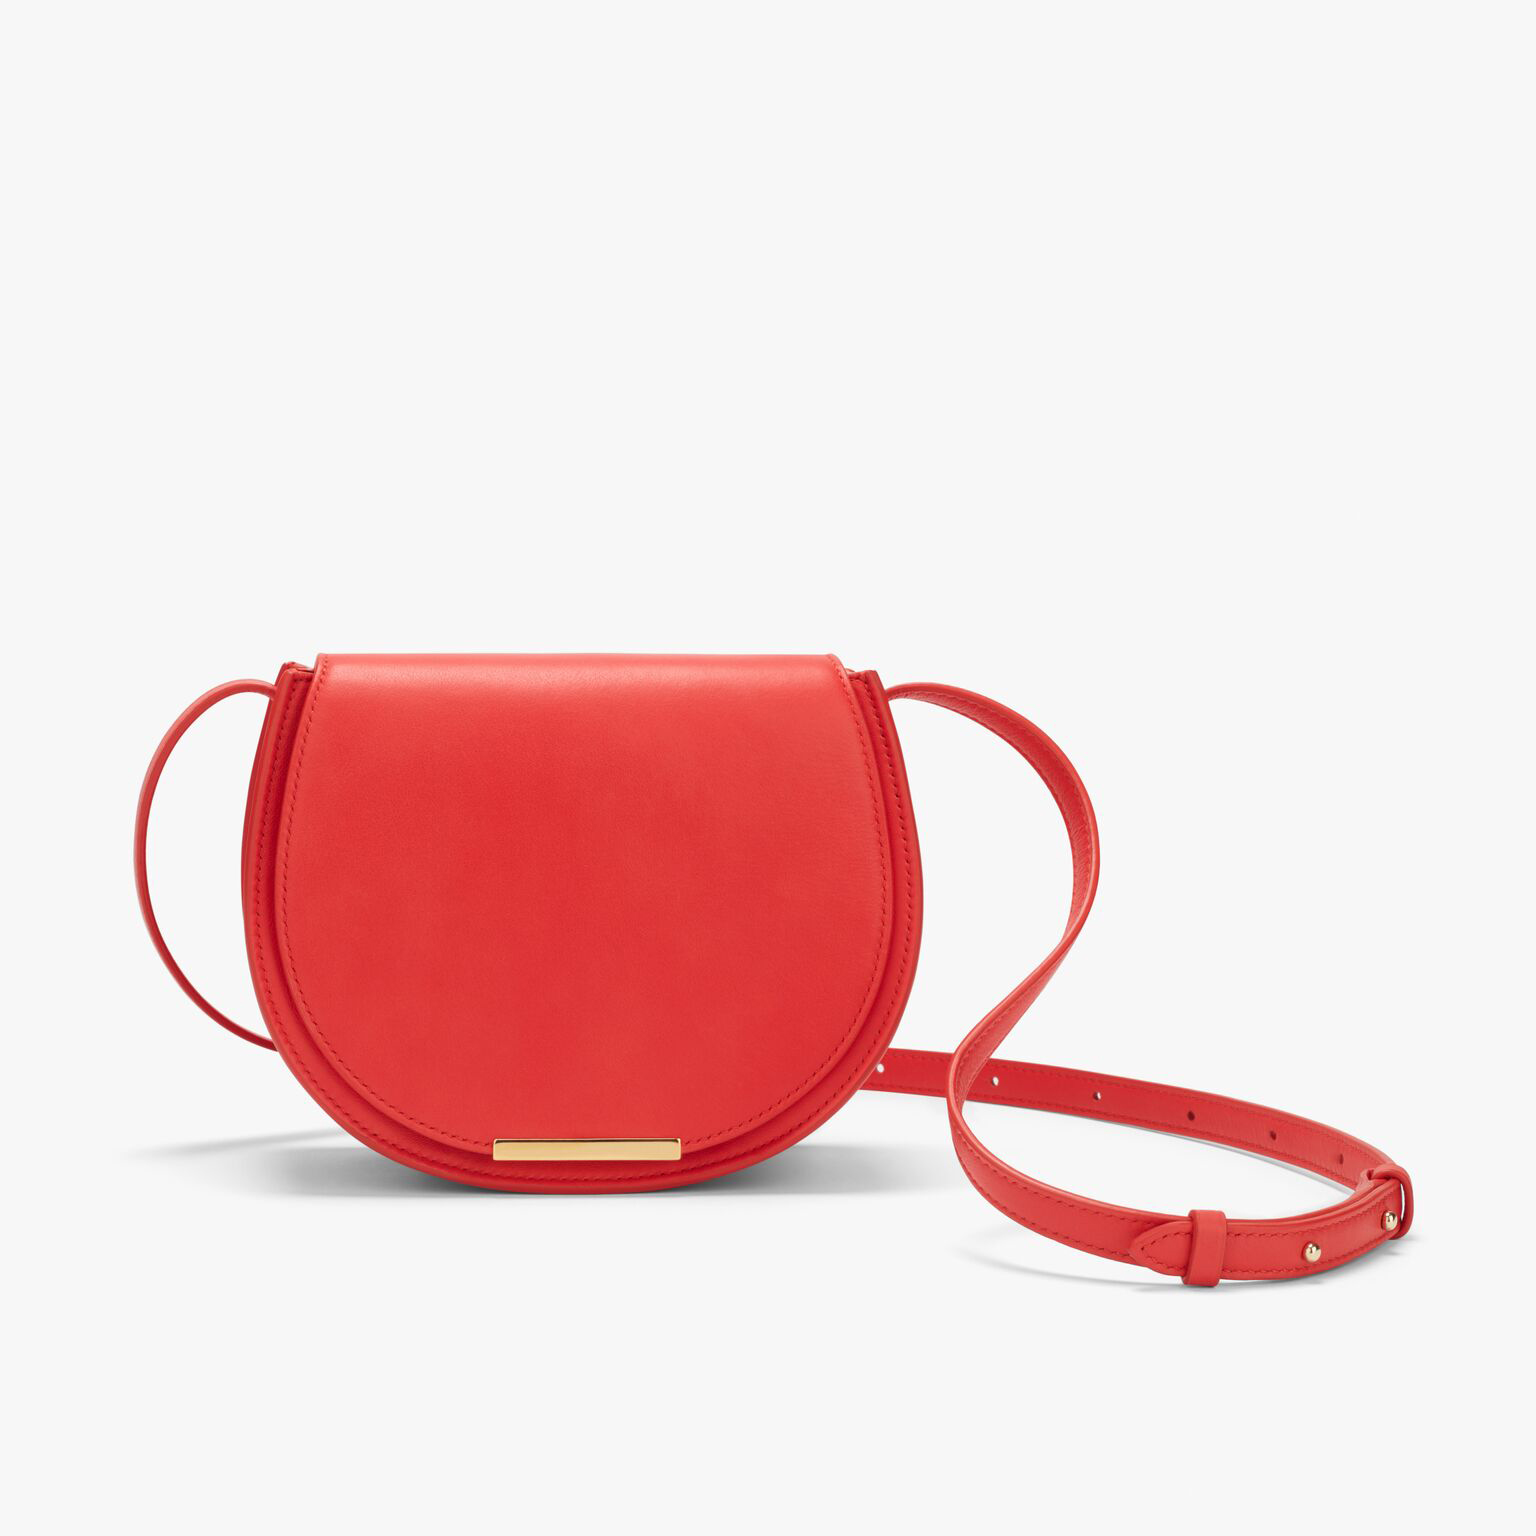 A shoulder bag from Cuyana